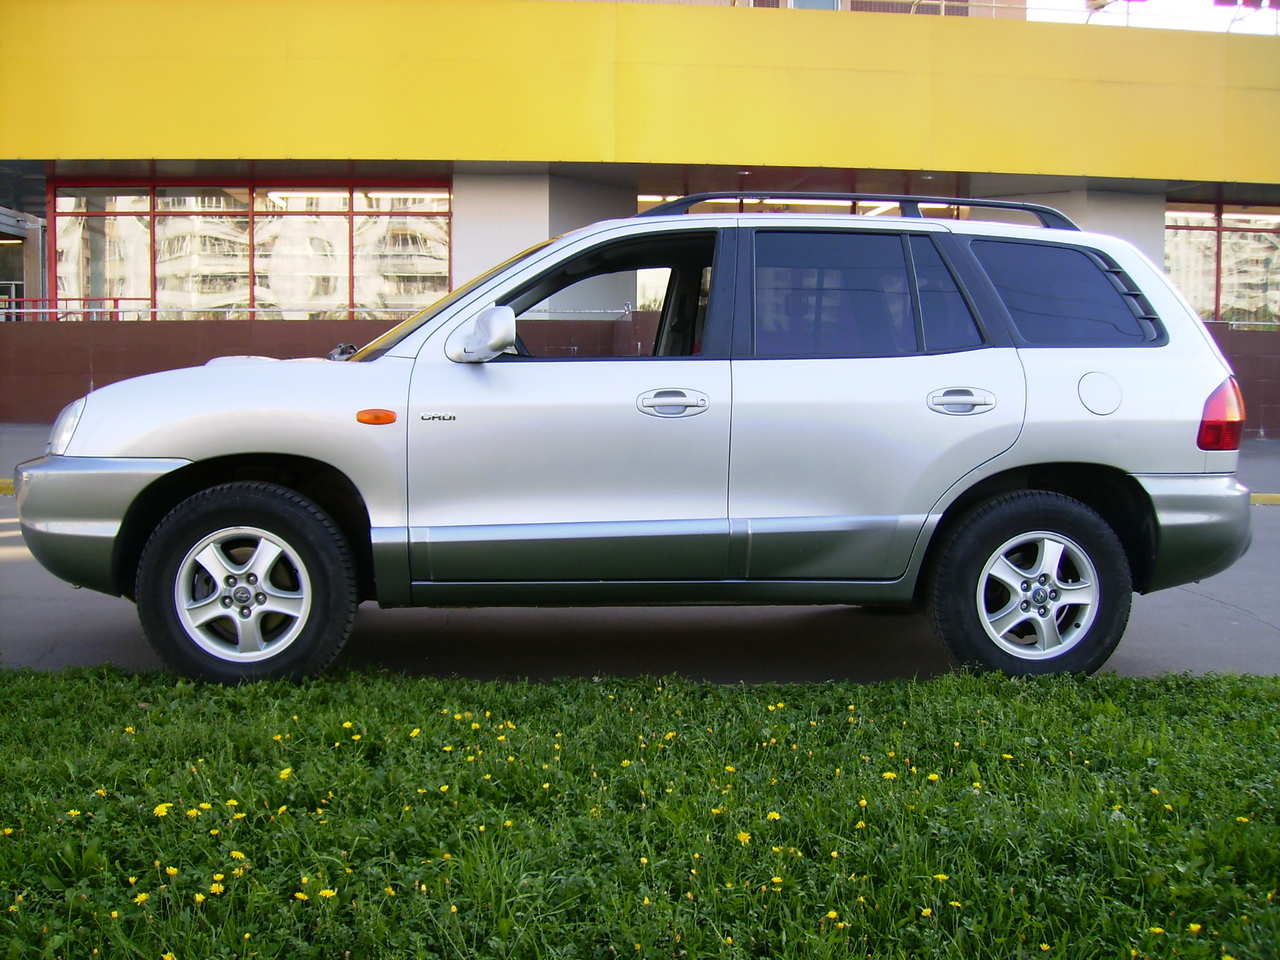 Photo #3 - Enlarge photo 1280x960 2002 Hyundai Santa FE Photos